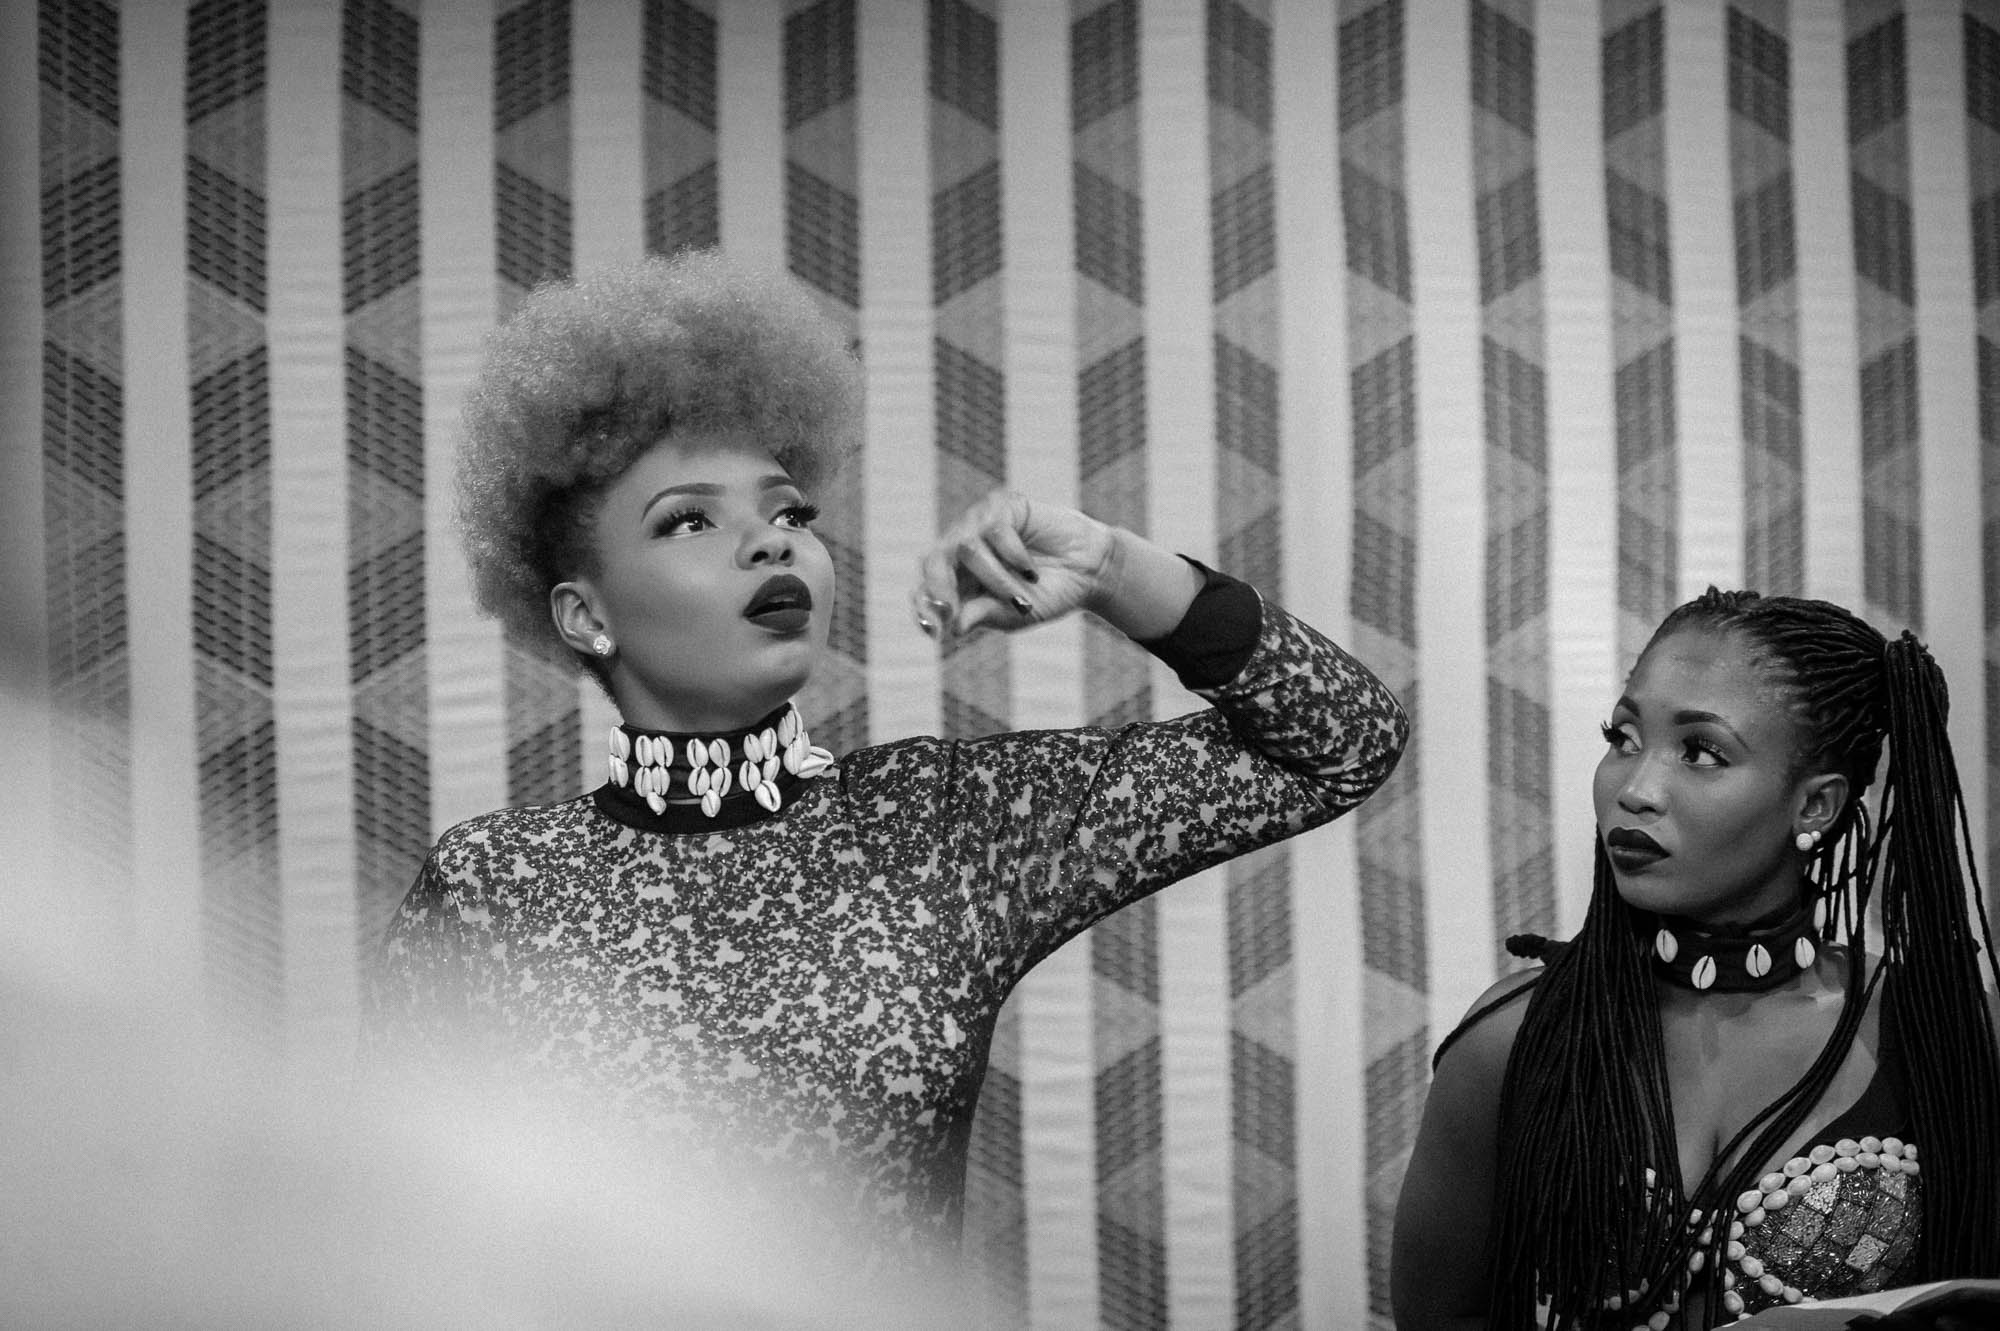 Paris, France. 7th April 2017. Yemi Alade having last minue meeting with her OversabiBand before her performance at Le Trianon, Paris. Photographed by Michael Tubes